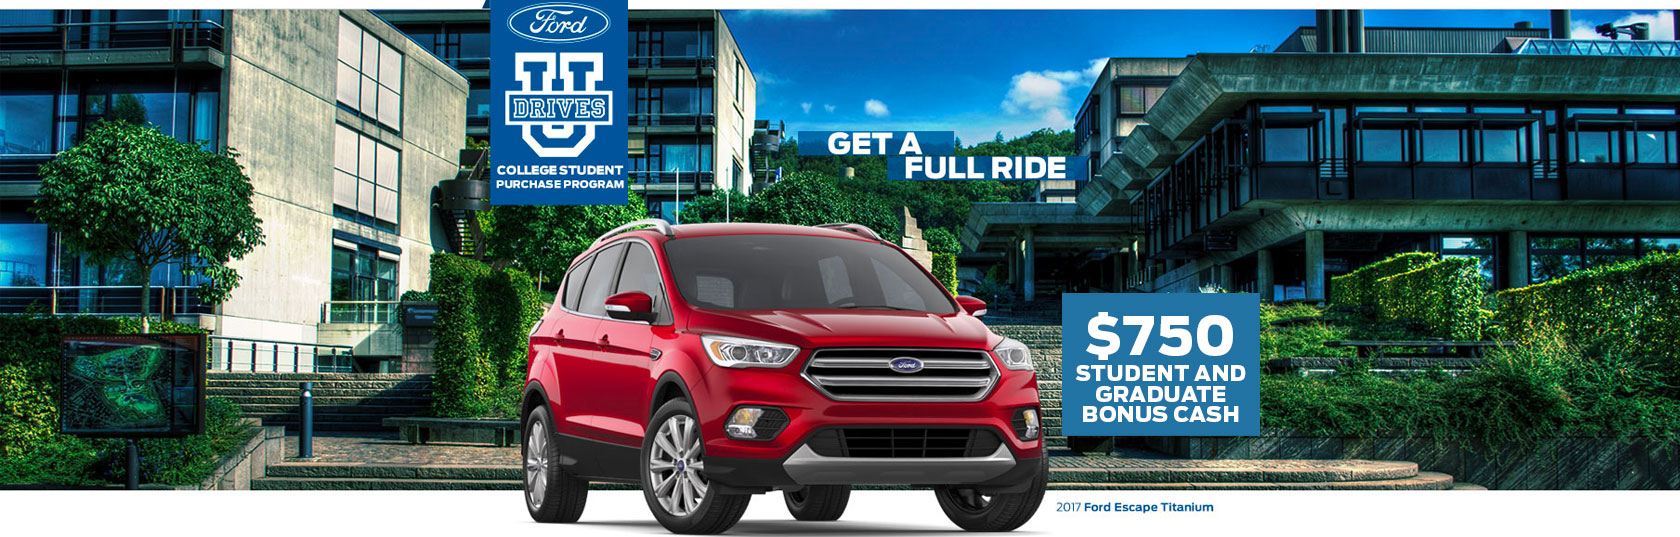 Ford drives u college student purchase program